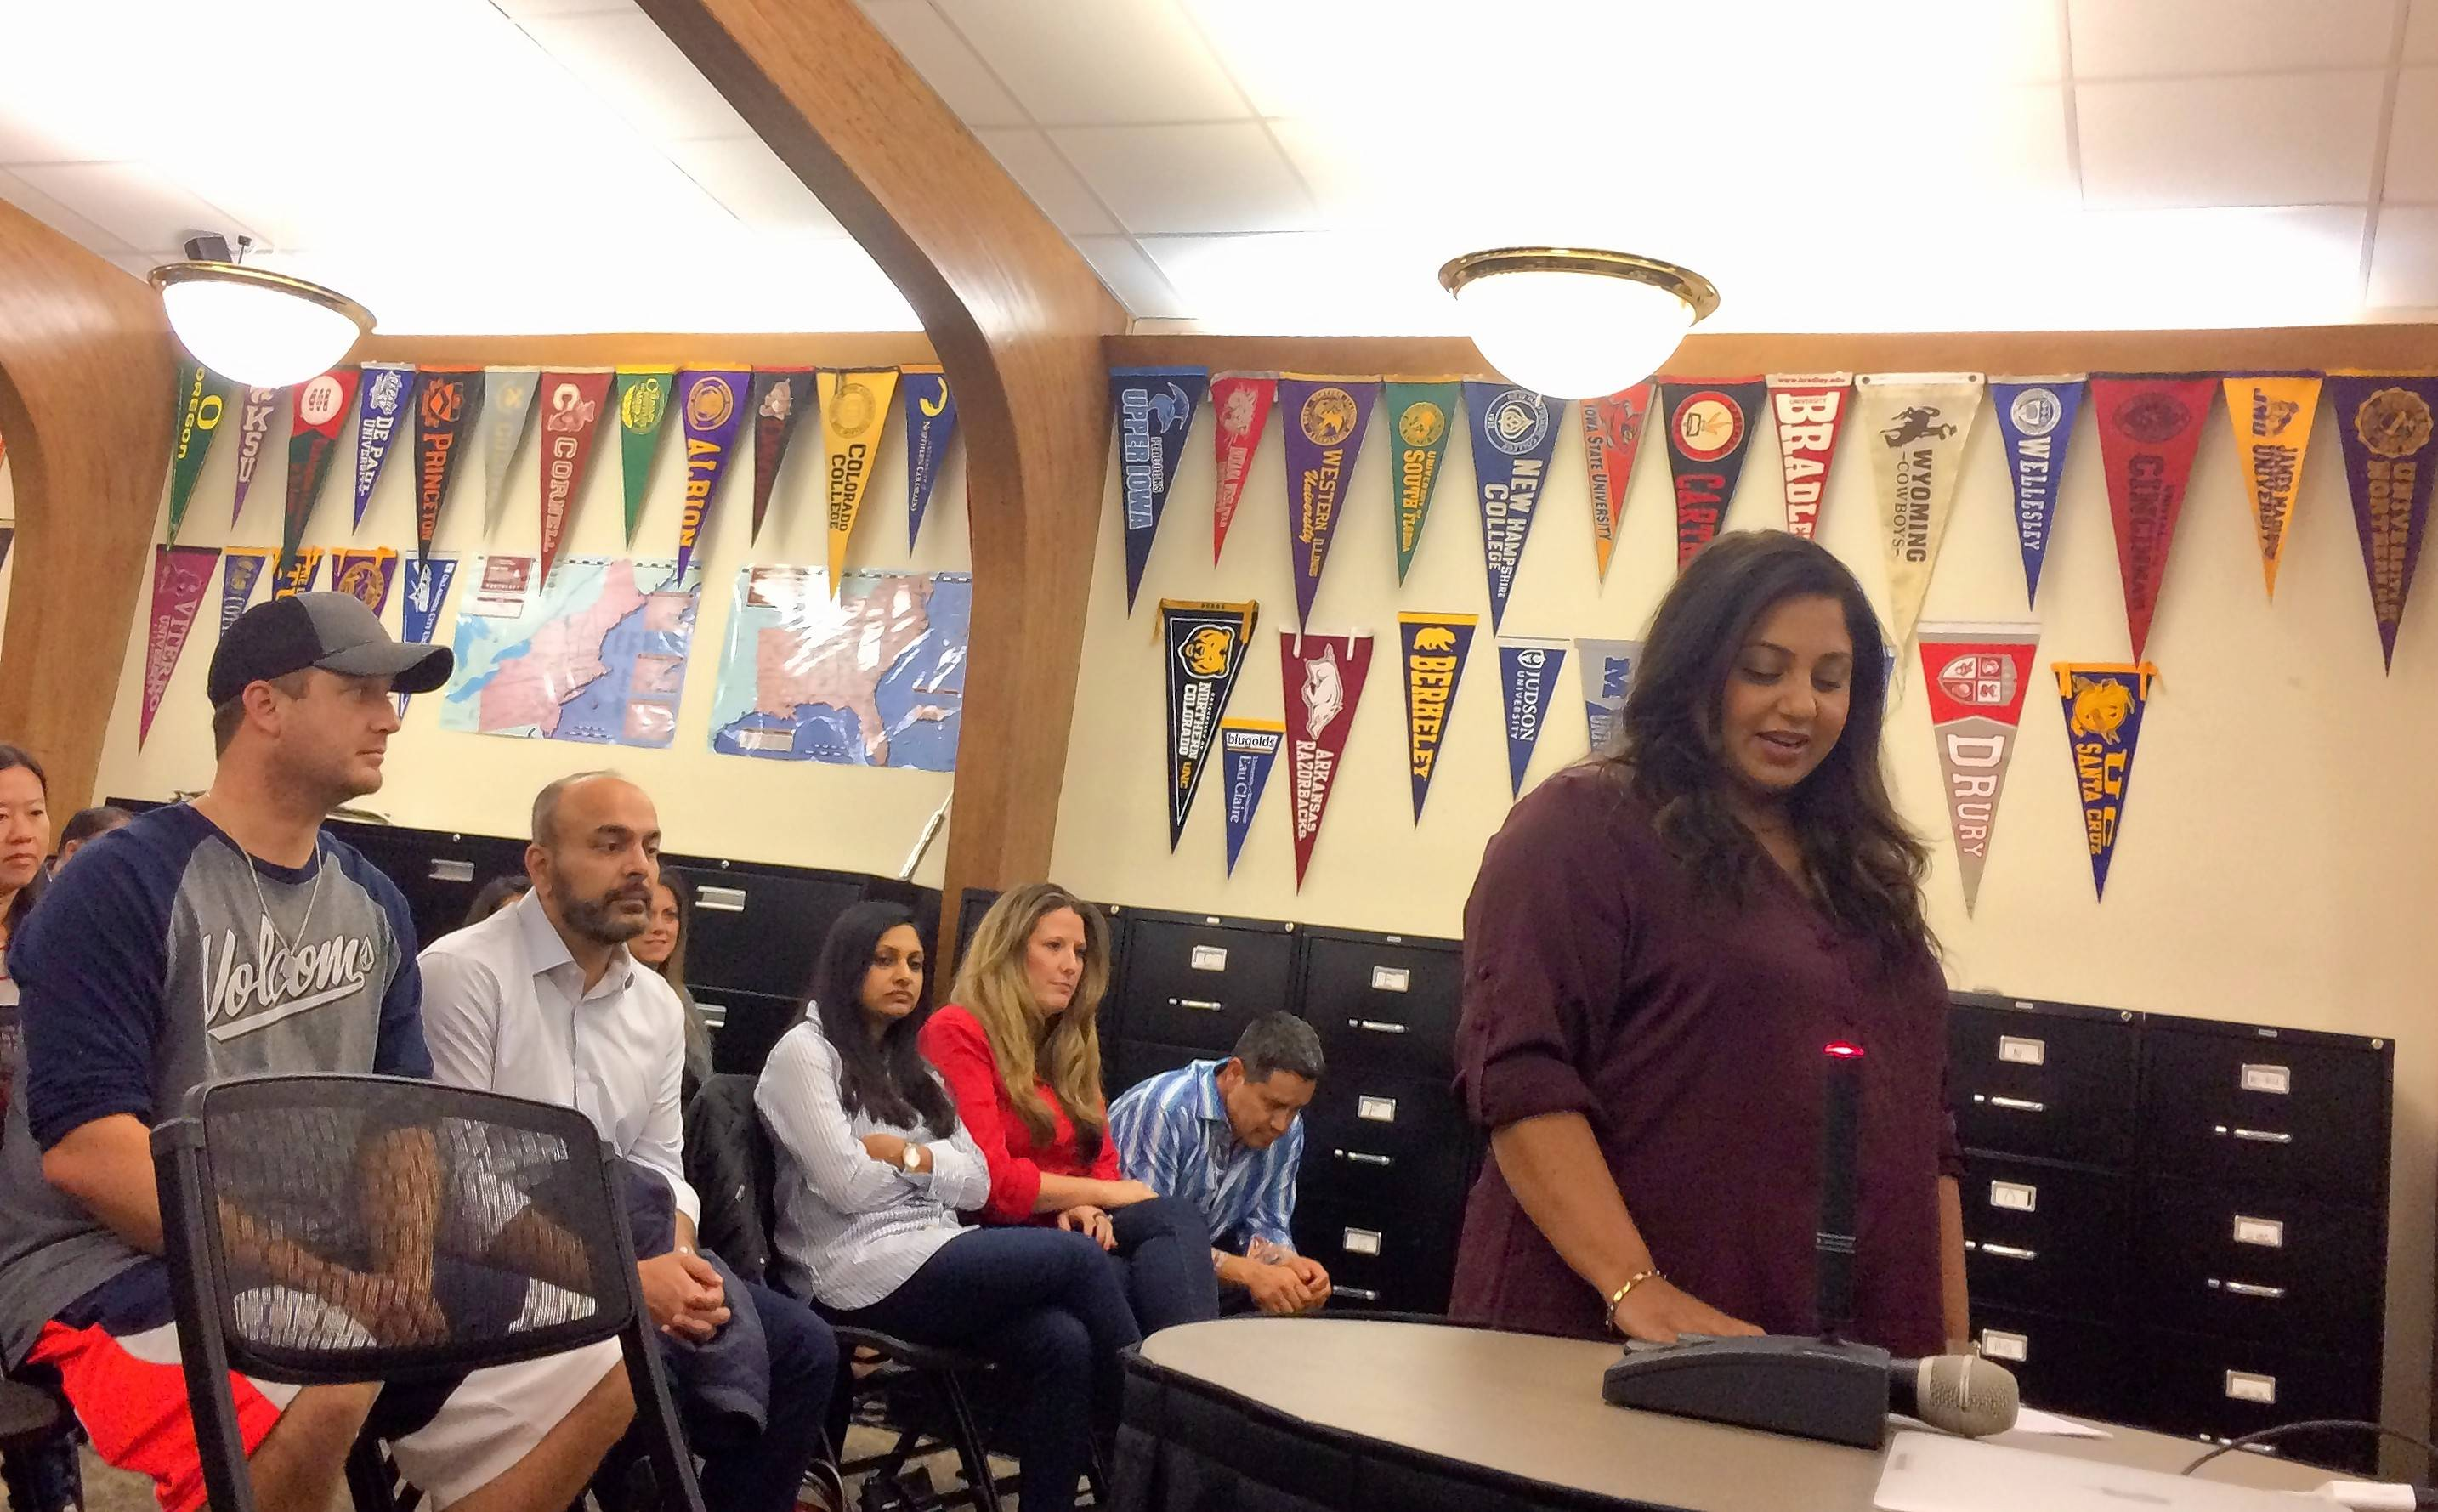 Barrington Area Unit District 220 board members Tuesday night agreed to delay a decision on a proposal for a change in where students from Barbara B. Rose Elementary School in South Barrington would move on to attend grades six through eight. Rose Elementary parent Bijal Chaturvedi asked the school board to hold off on pursuing a boundary change at this time.